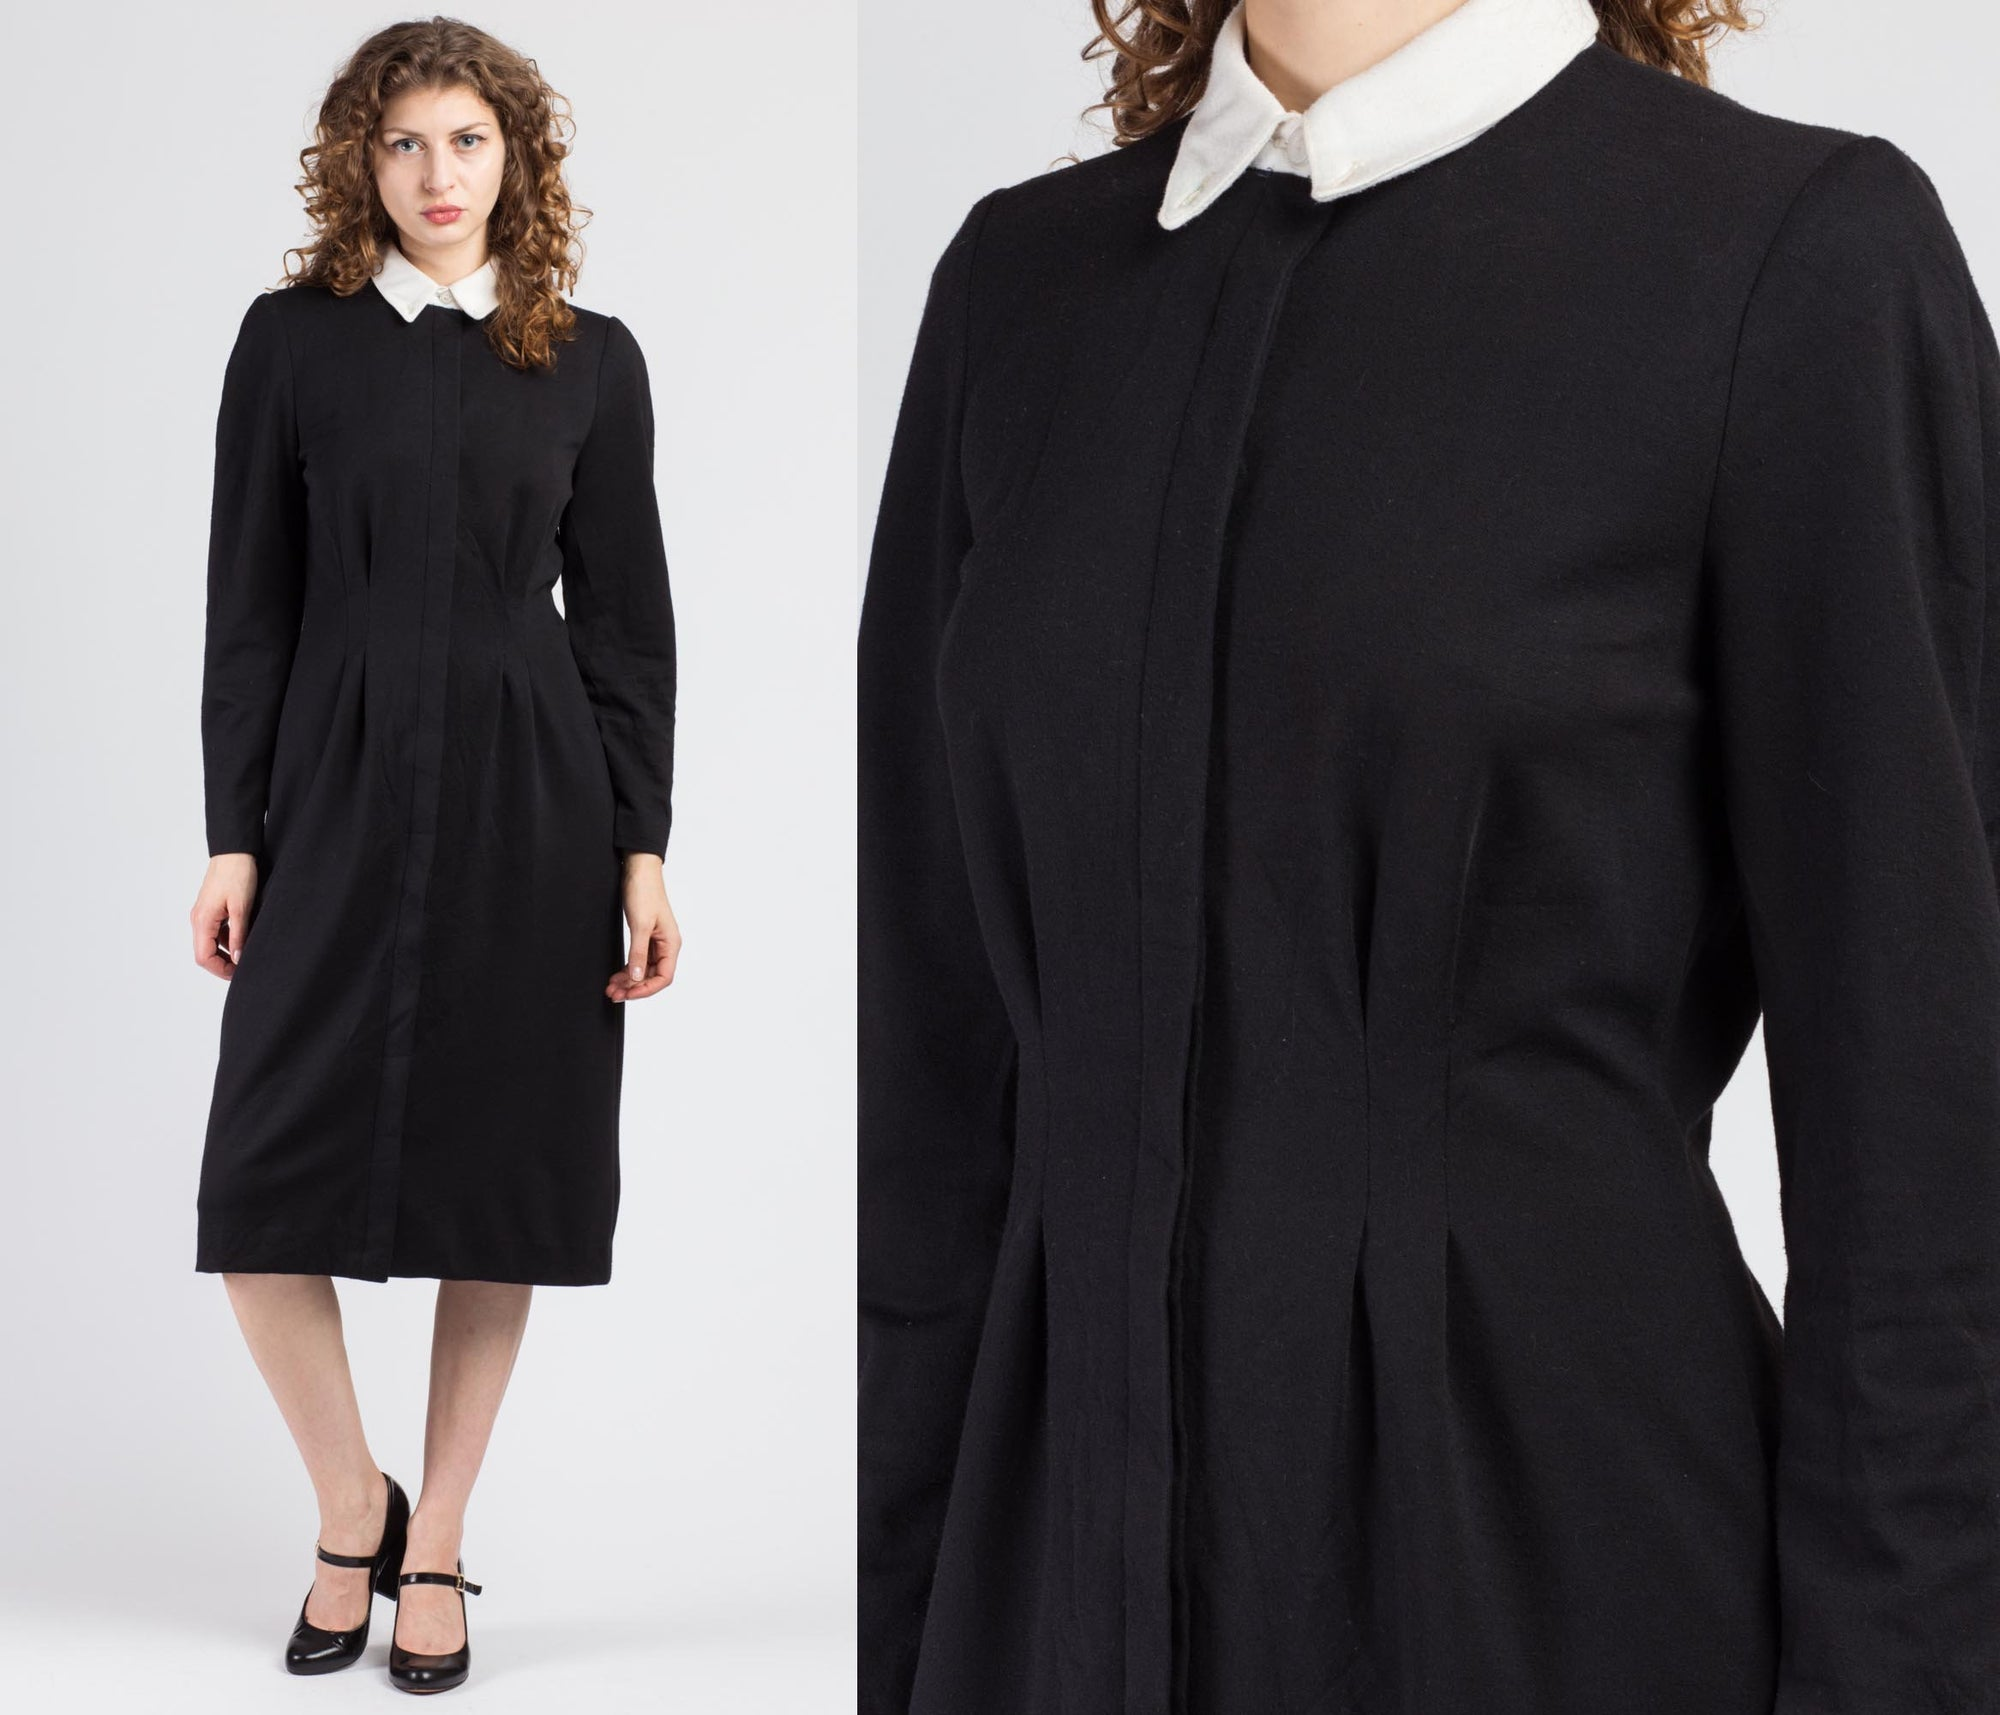 80s Black Contrast Collar Midi Dress - Medium to Large